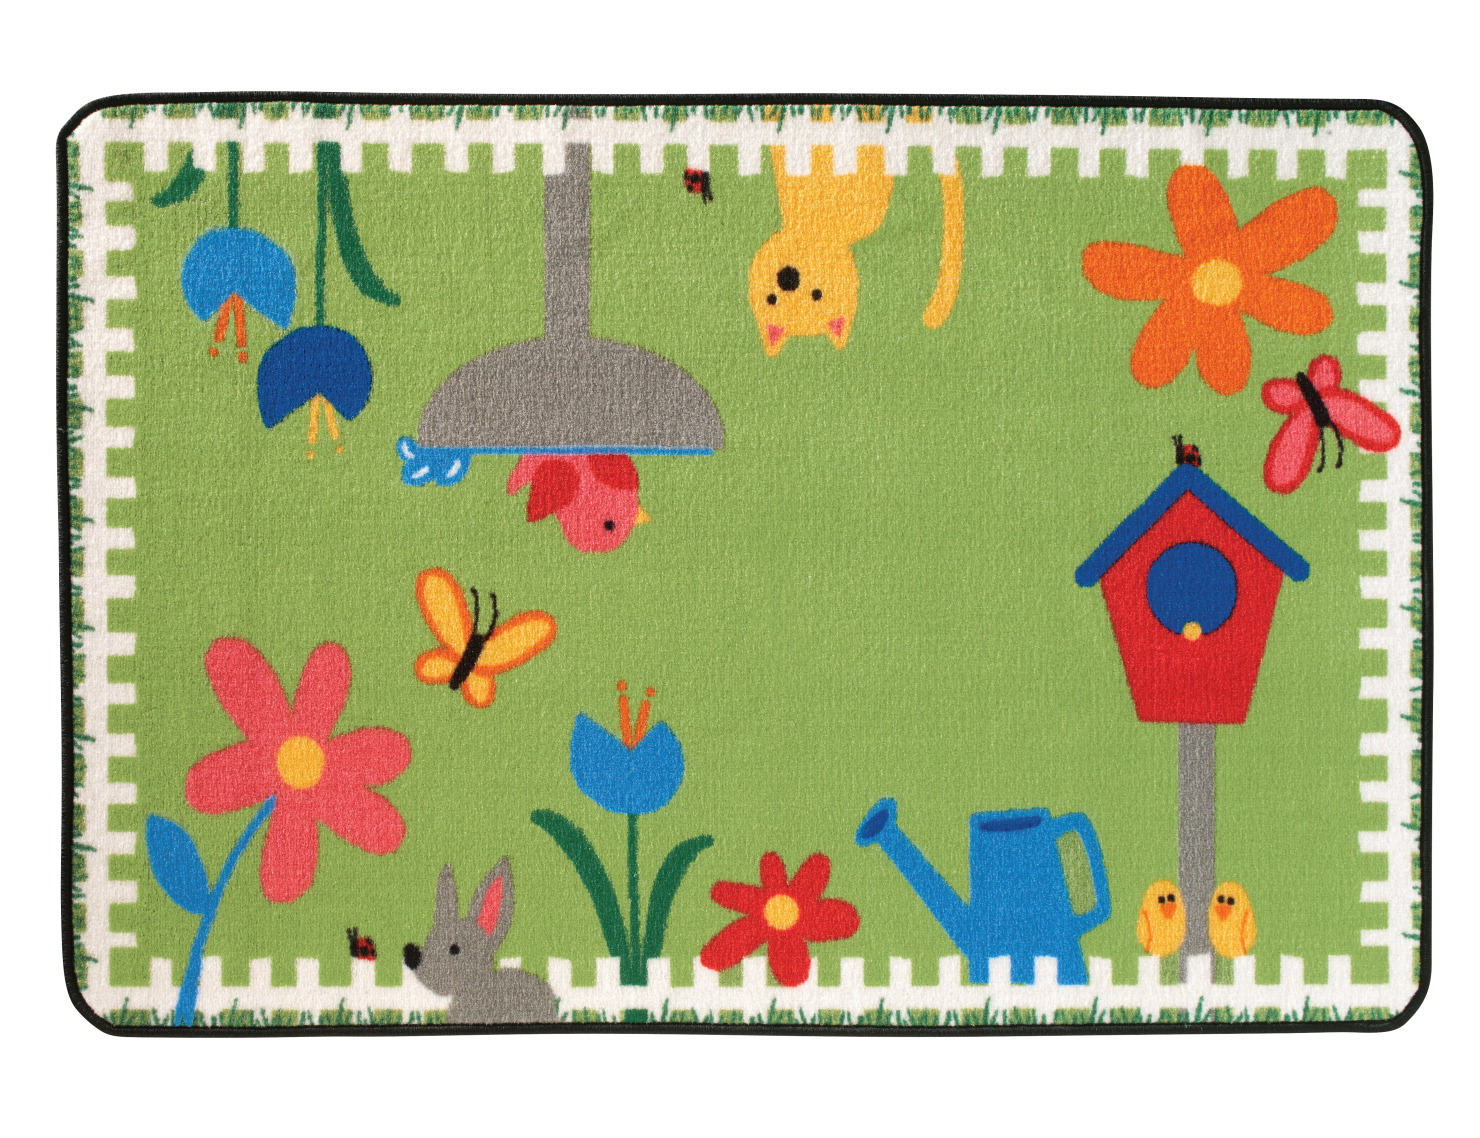 Carpets for Kids Value Line Garden time Rug, 4 x 6 Feet, Rectangle